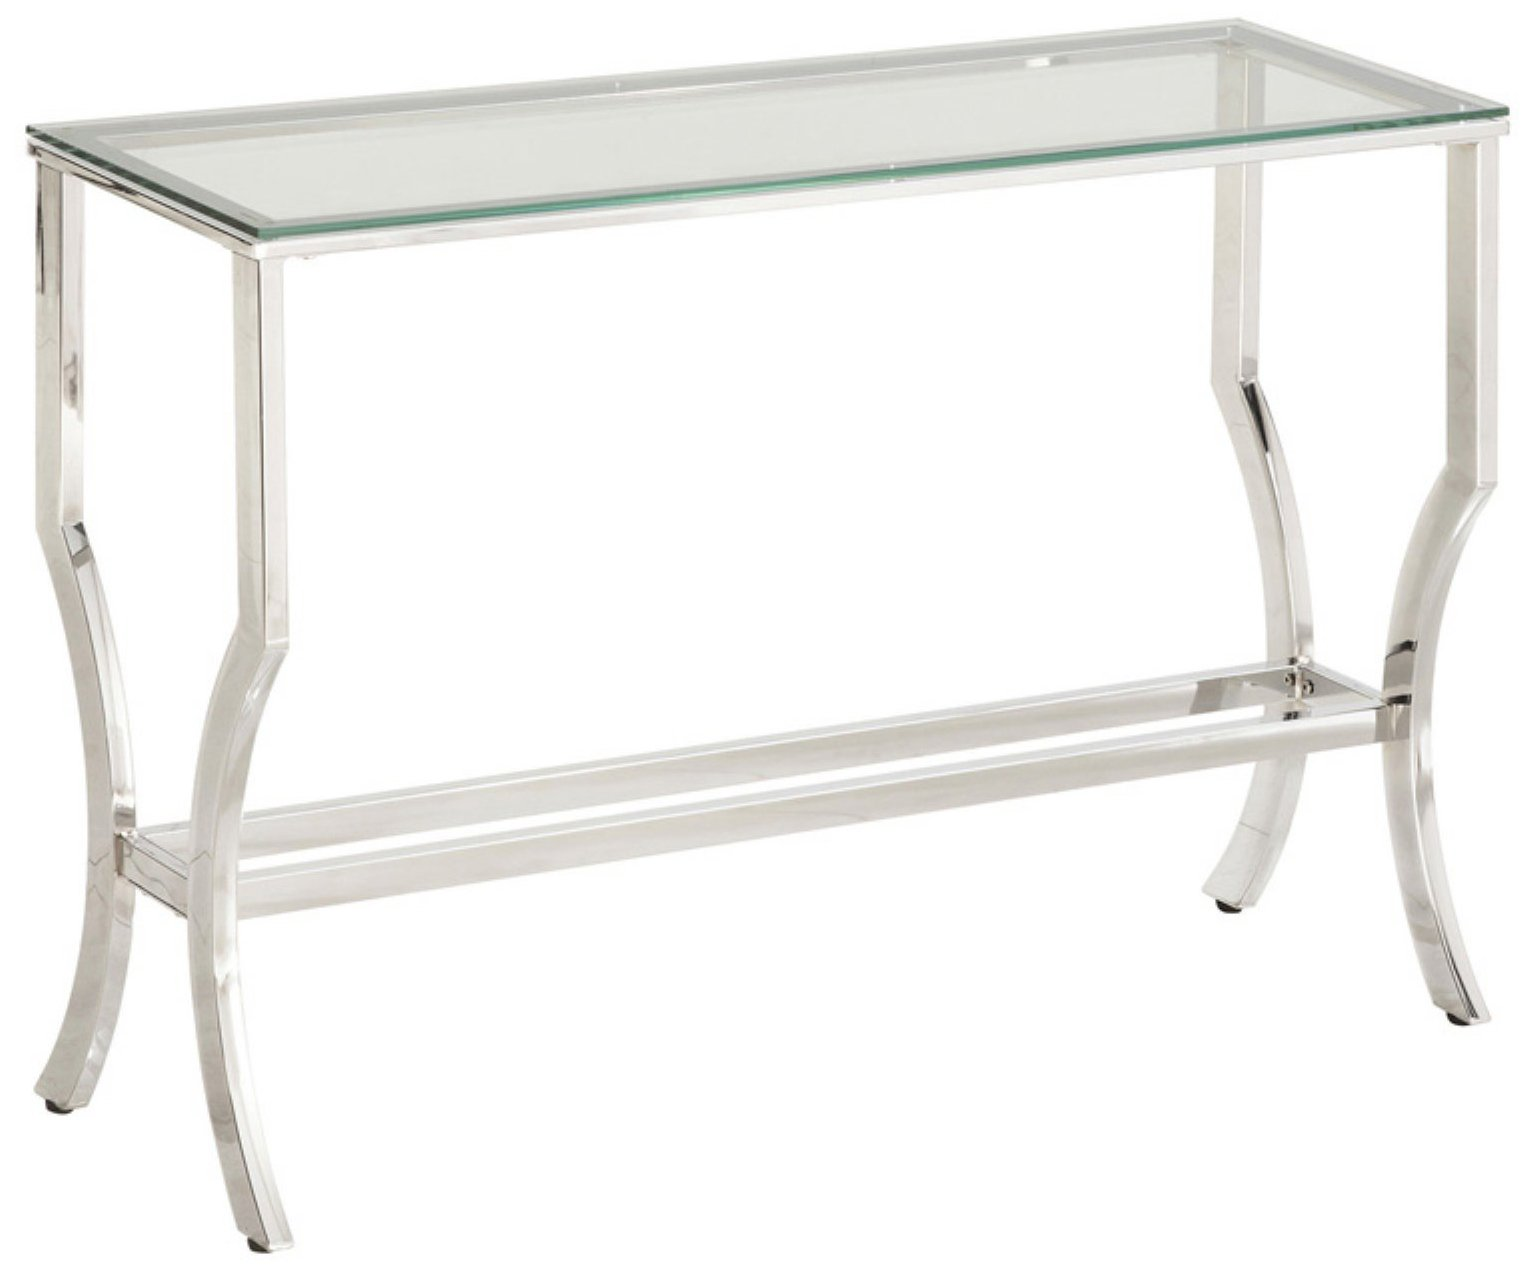 Coaster 720339-CO Glass Top Console Table, Chrome by Coaster Home Furnishings